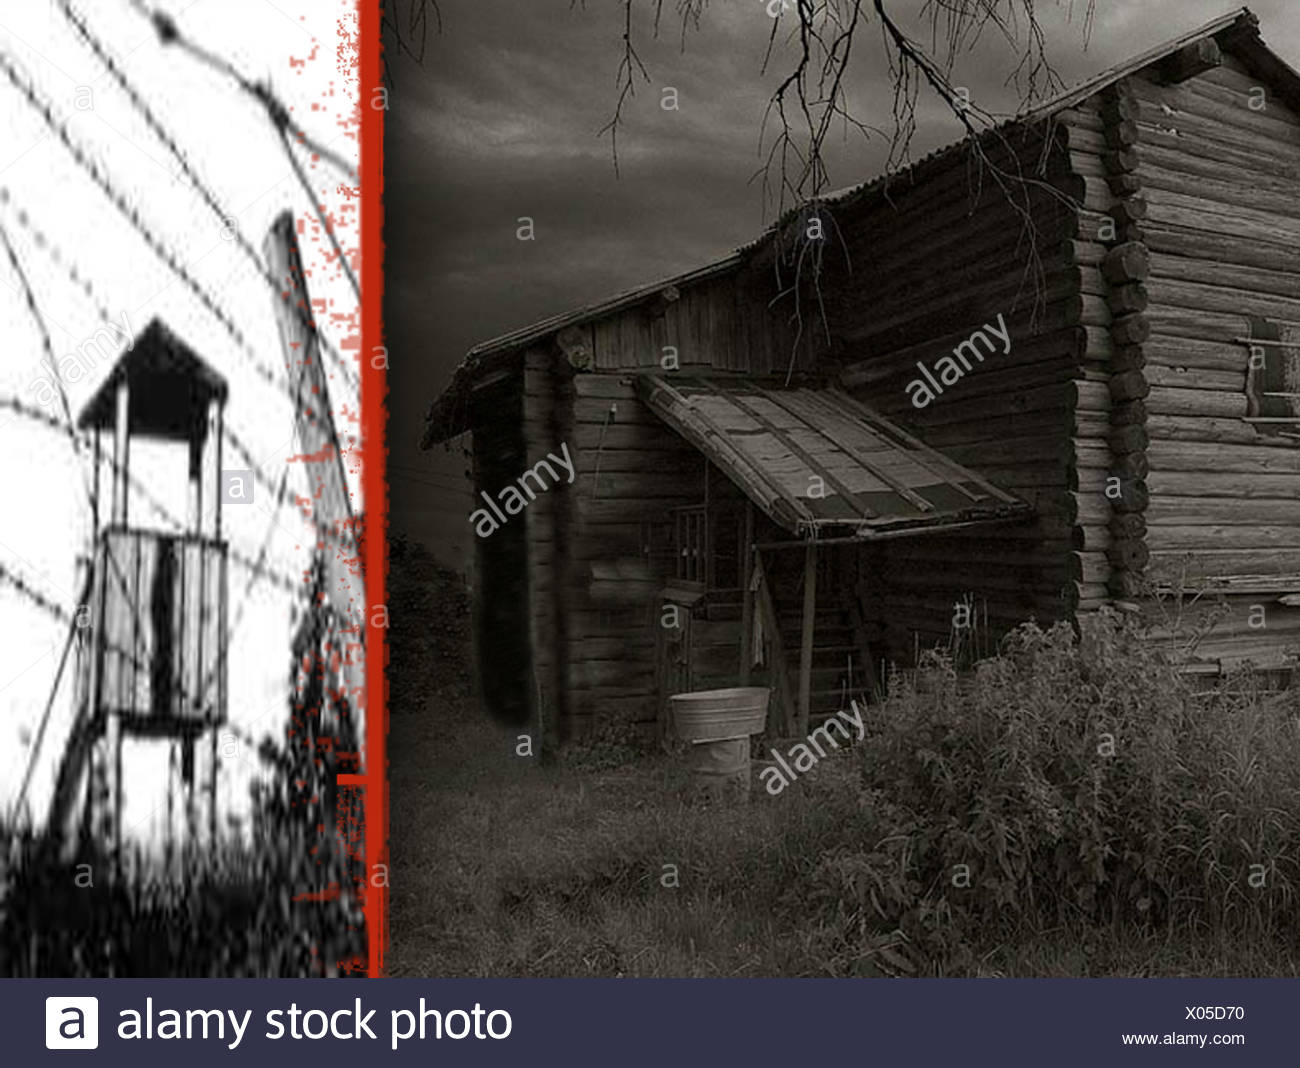 death hunger cold brig jail soviet union prison camp arrest arbitrariness gulag - Stock Image